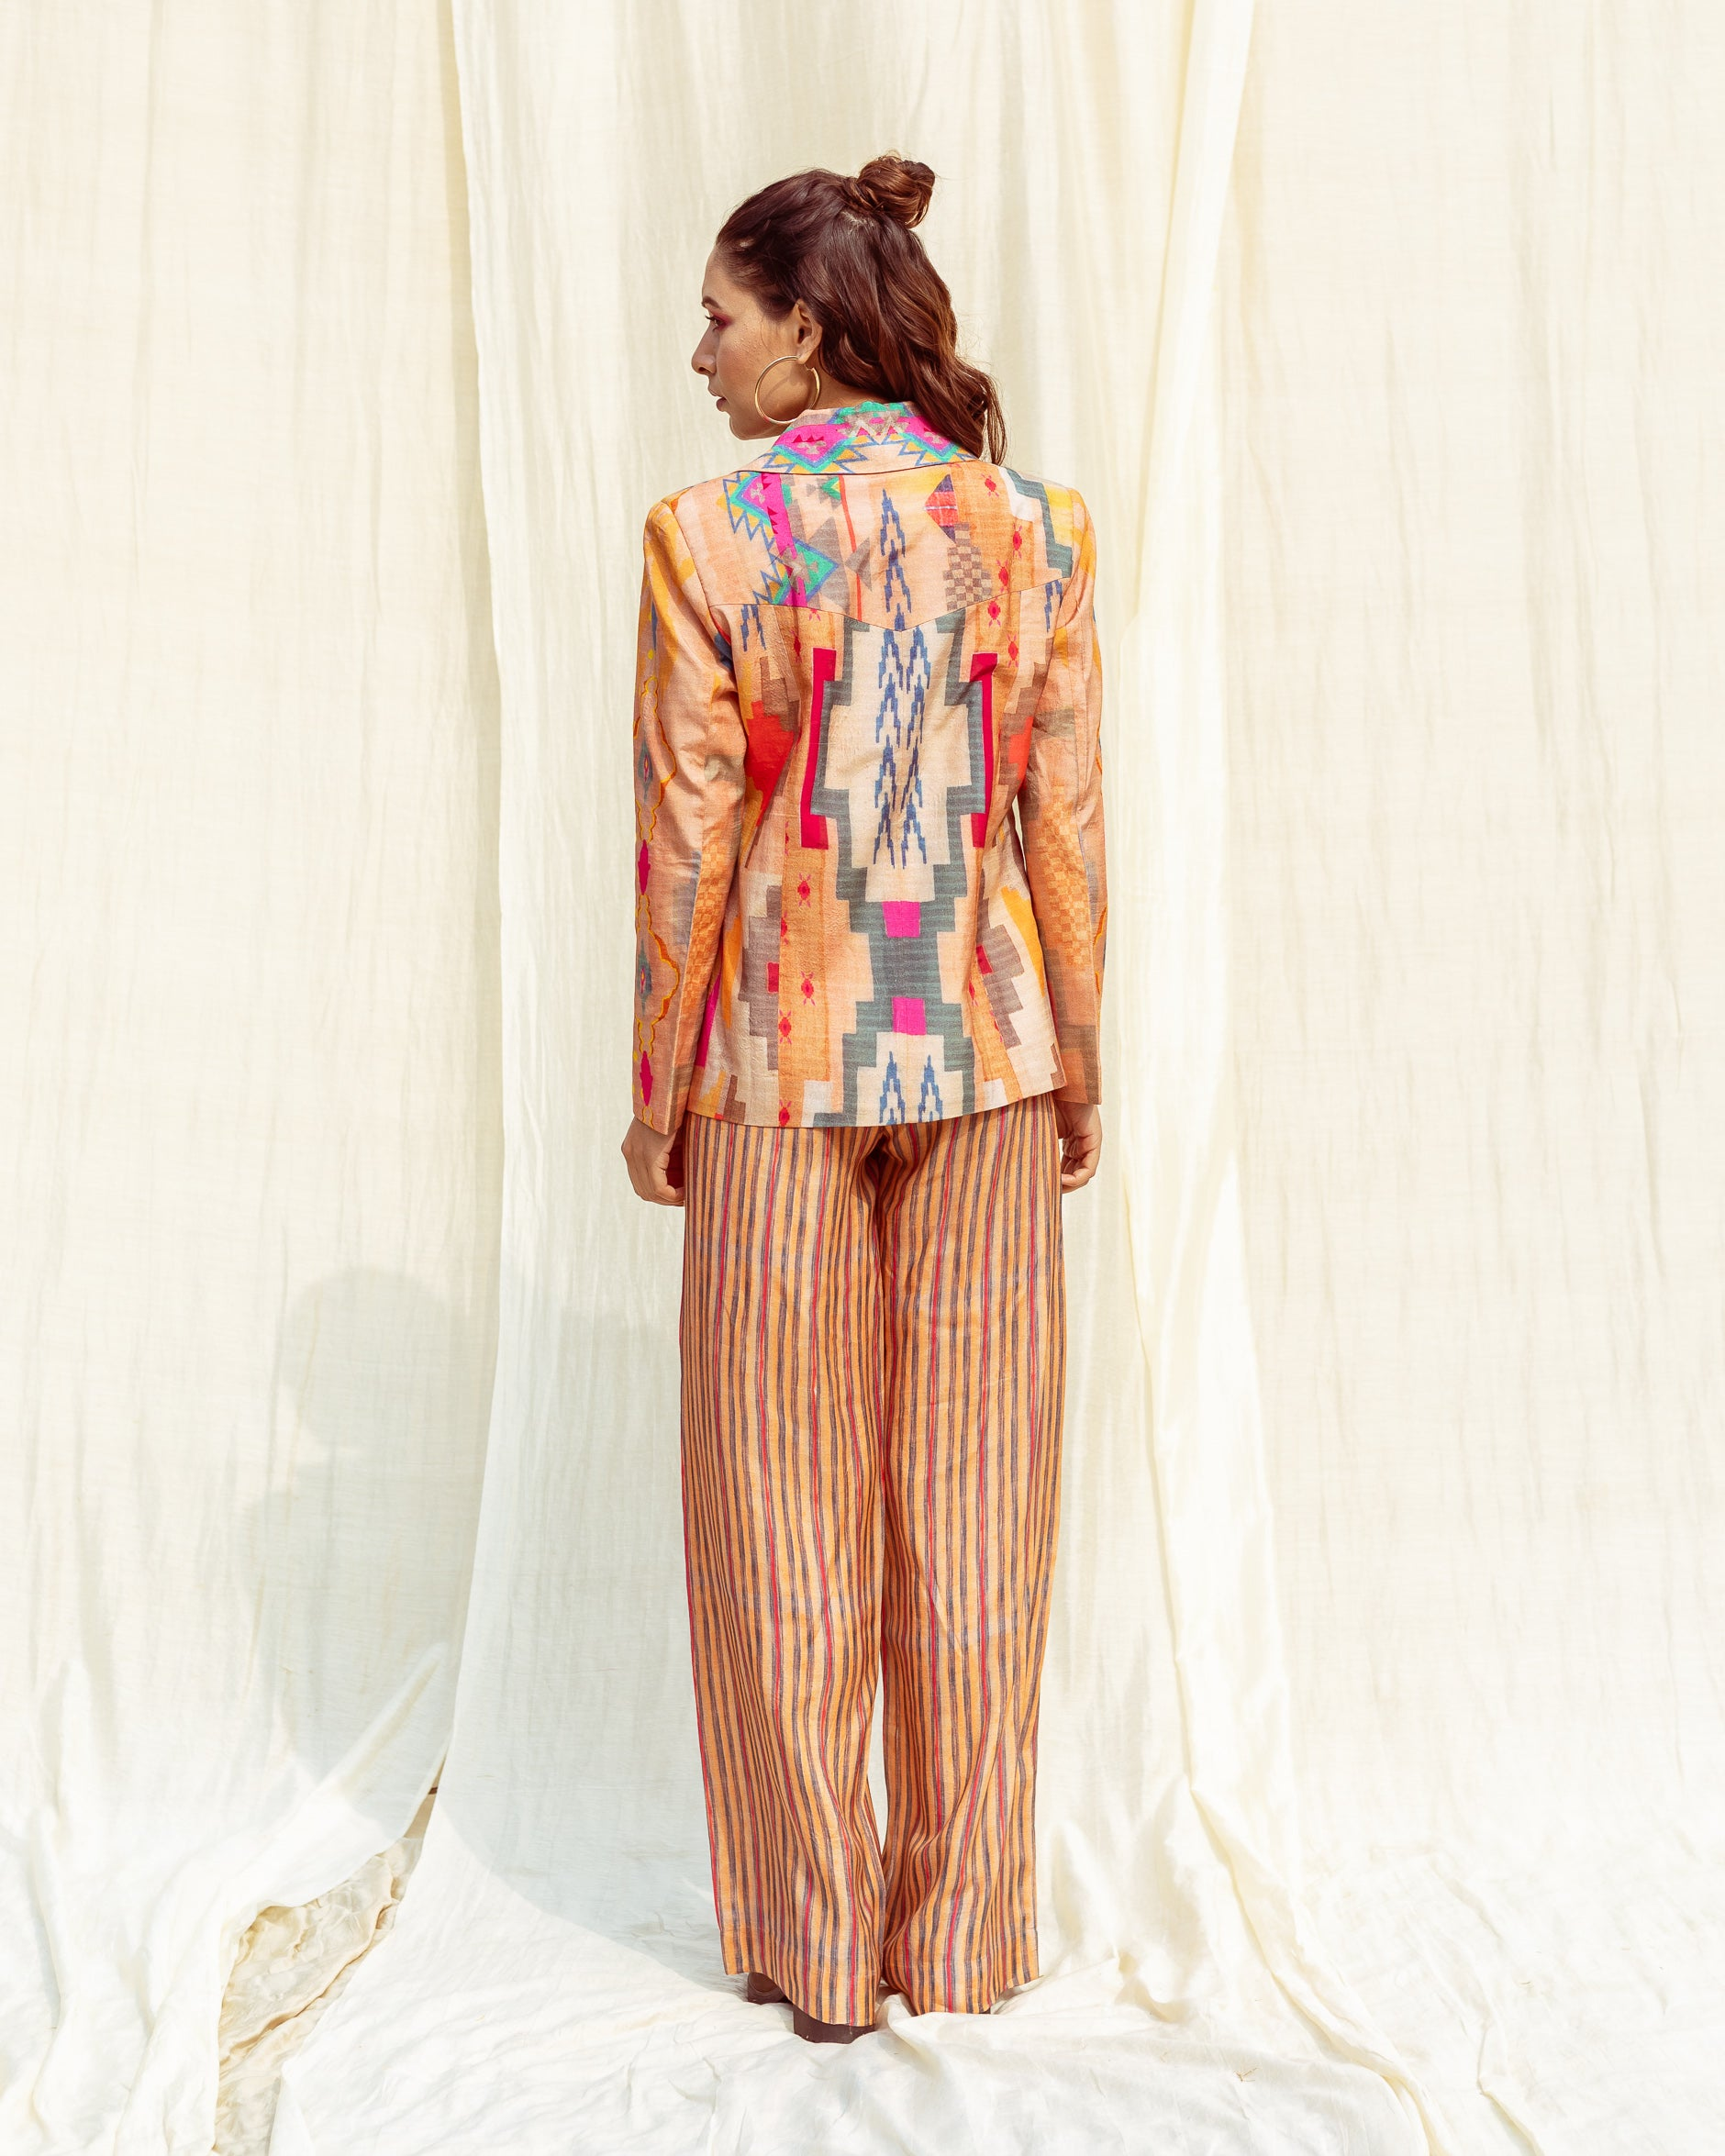 The Caravan Luxury Printed Coat Pant